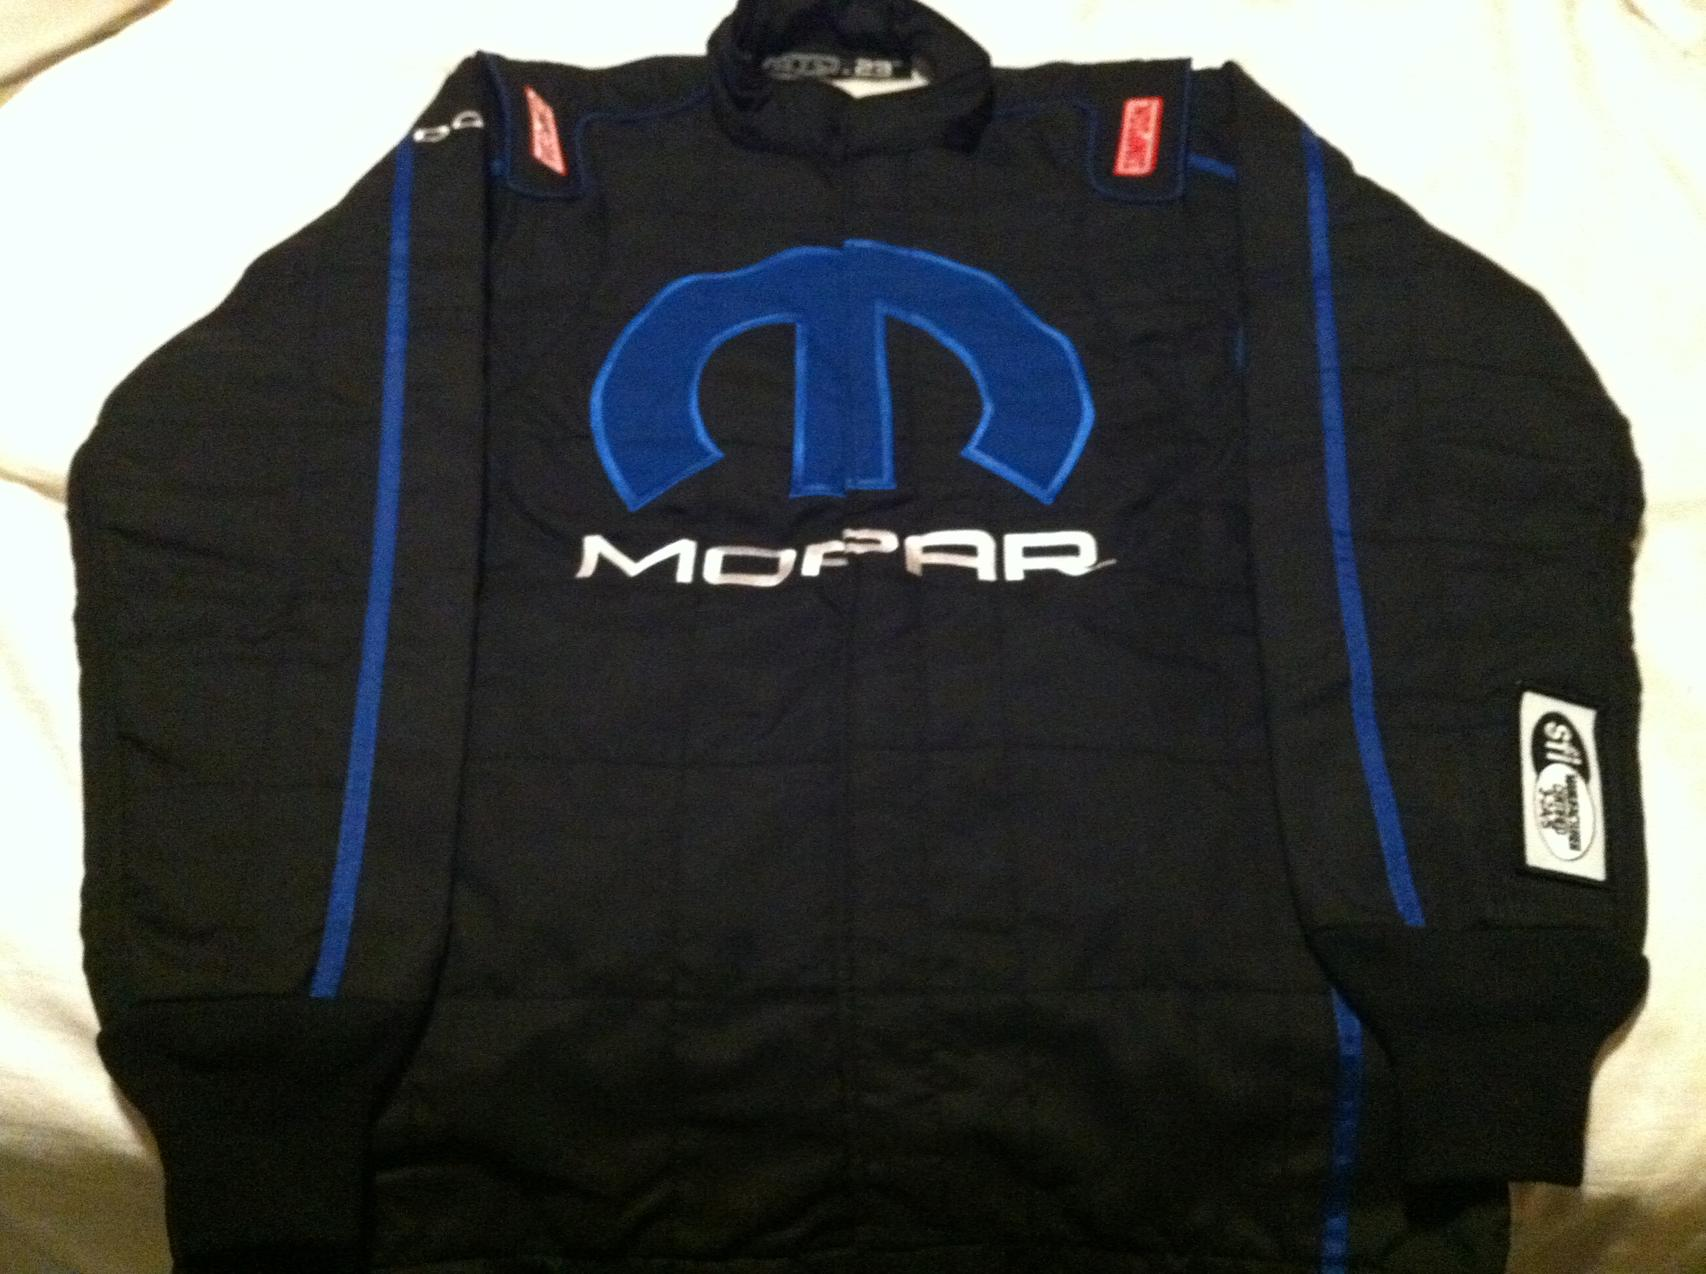 Mopar/Simpson 2 Layer Jacket and other Simpson Gear-photo.jpg